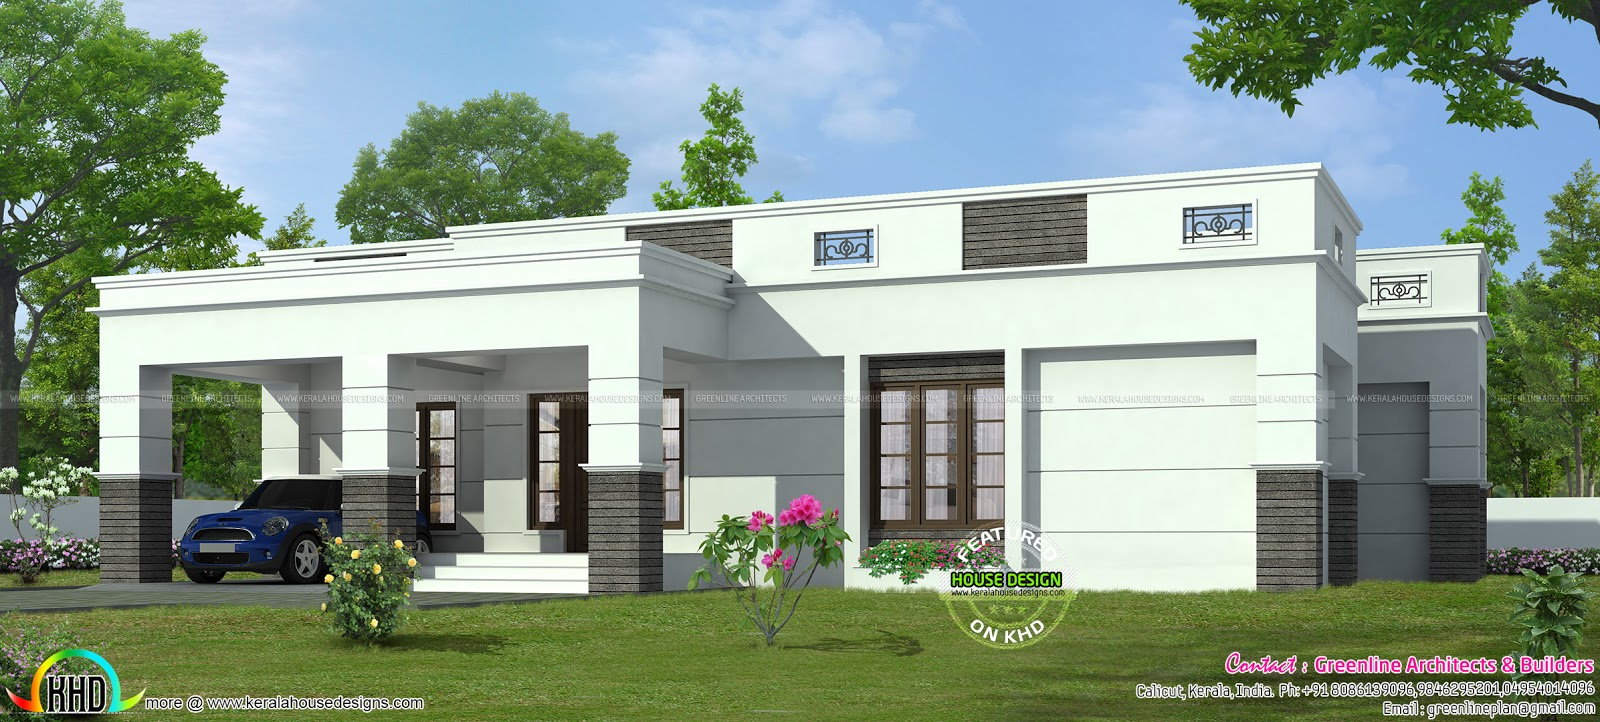 4 bedroom single storied flat roof home kerala home for 4 bedroom house plans kerala style architect